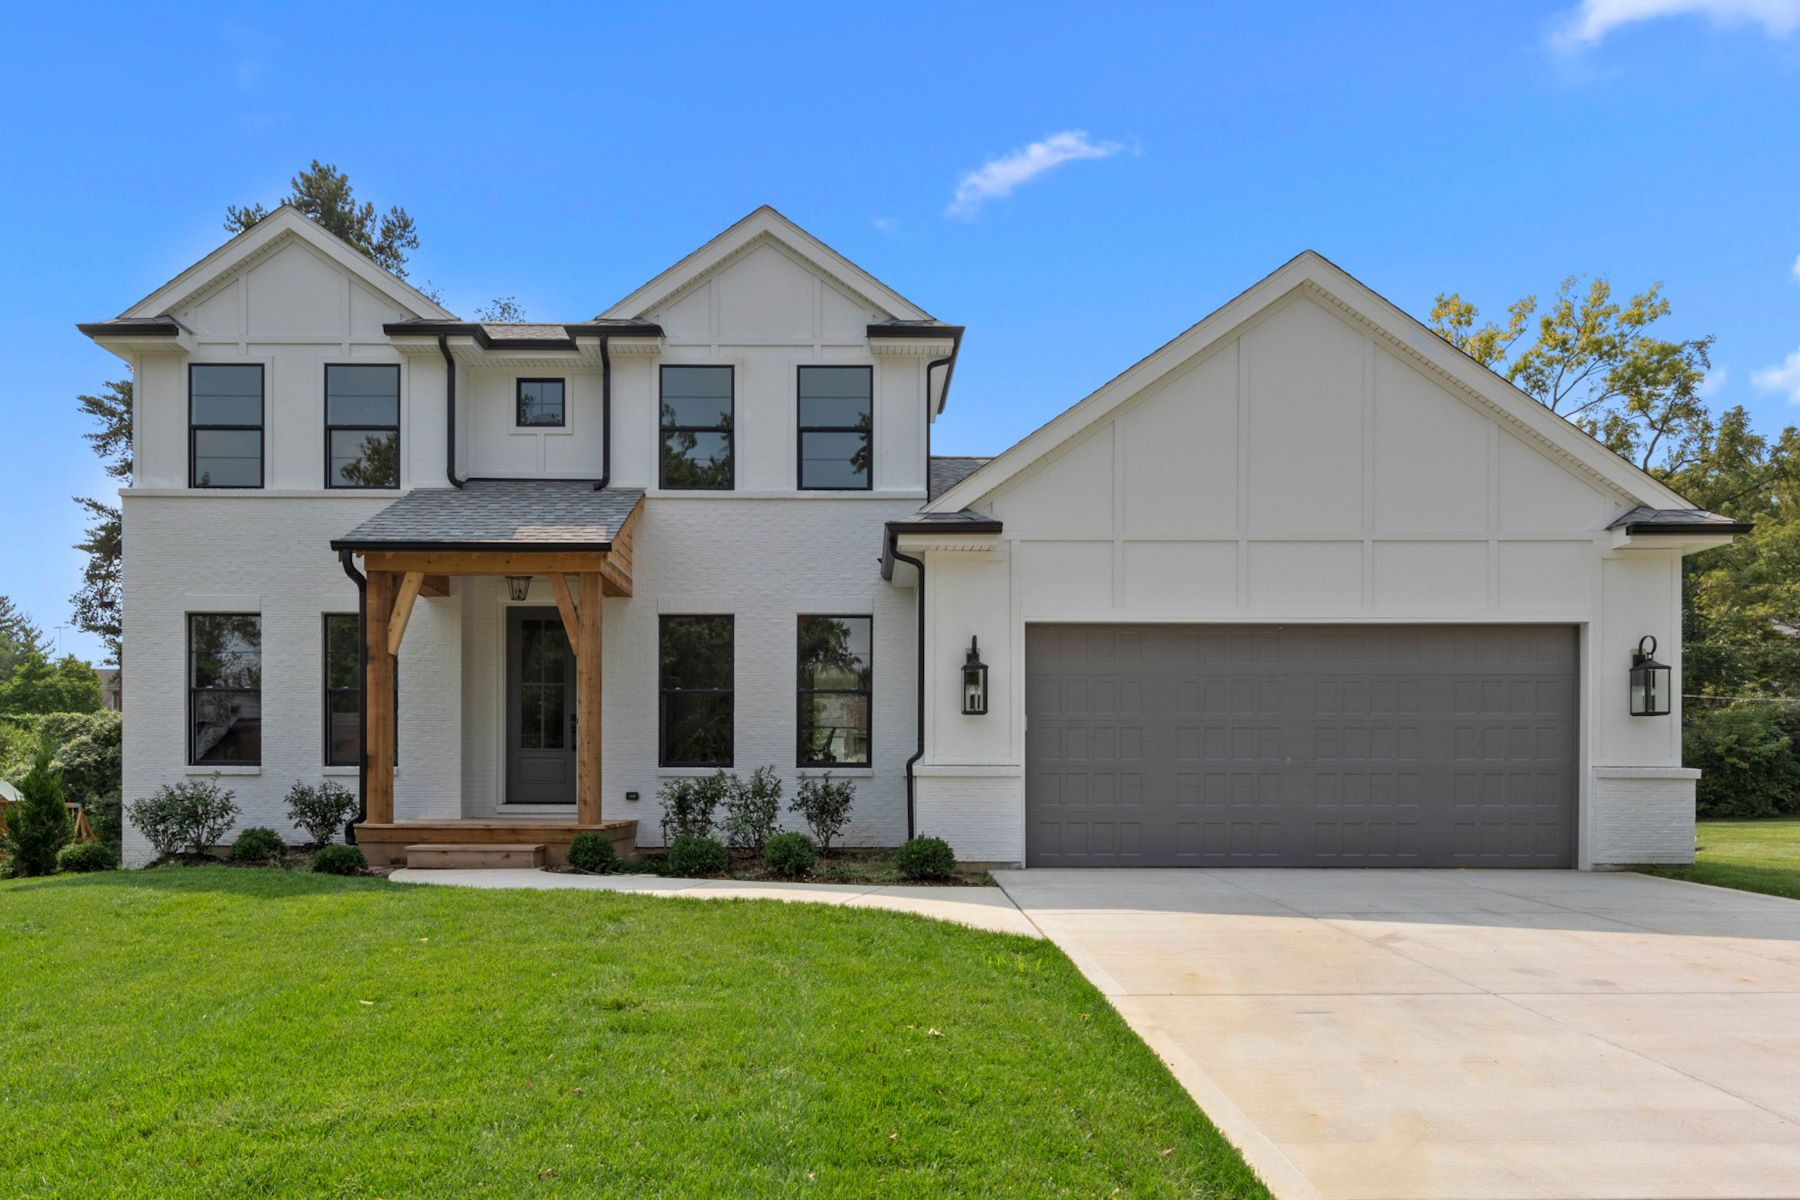 Single Family Homes for Active at Modern Farmhouse 12442 Ridgefield Drive Des Peres, Missouri 63131 United States